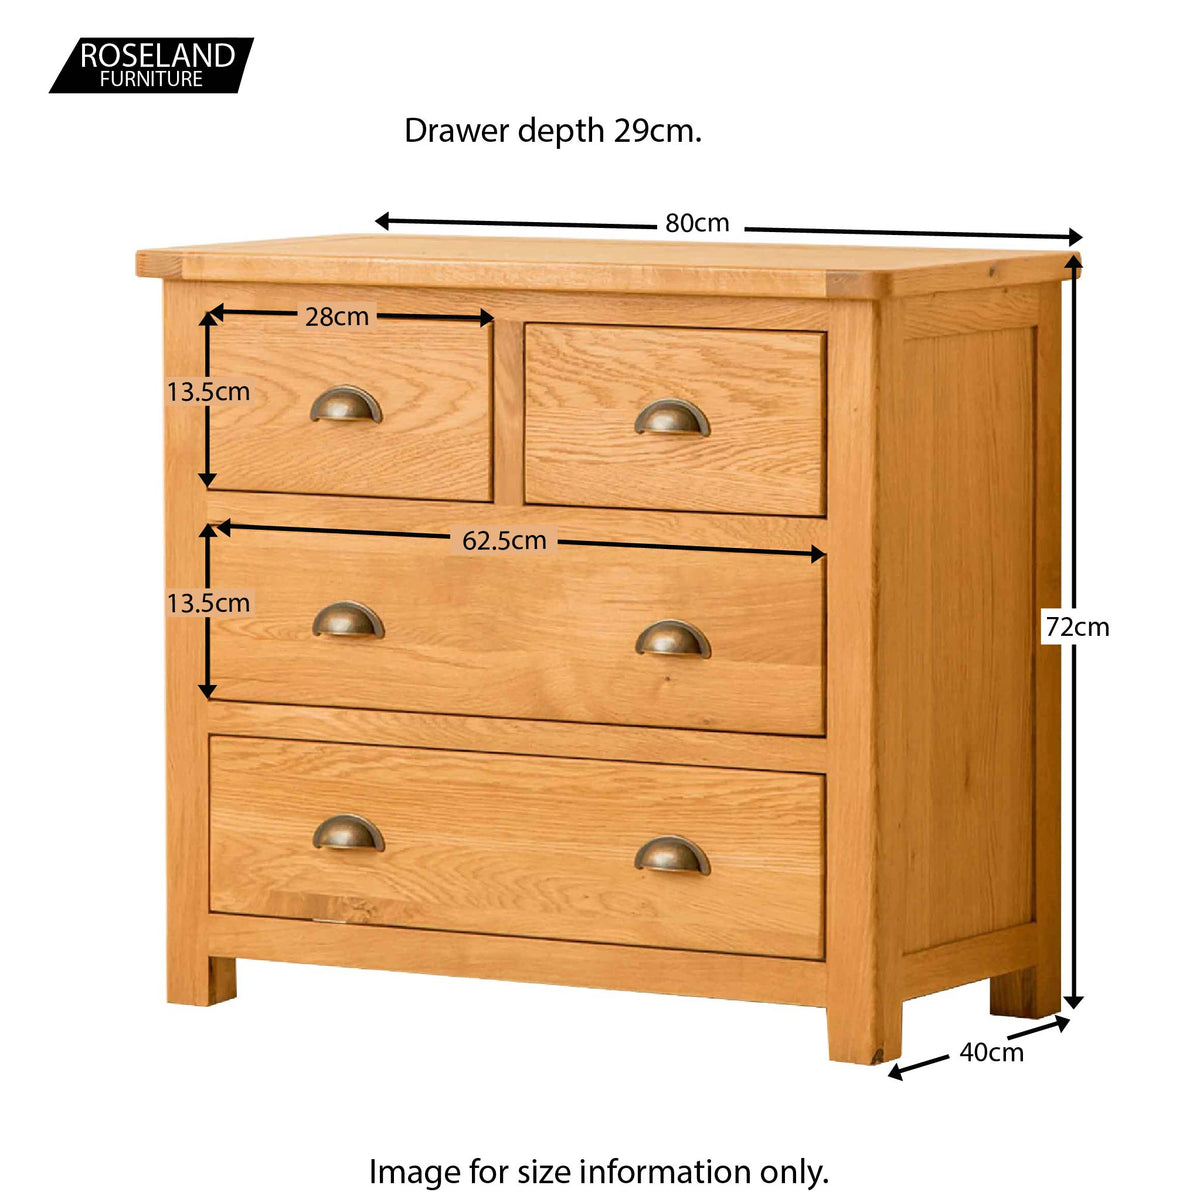 Roseland Oak 2 Over 2 Drawer Chest - Size Guide